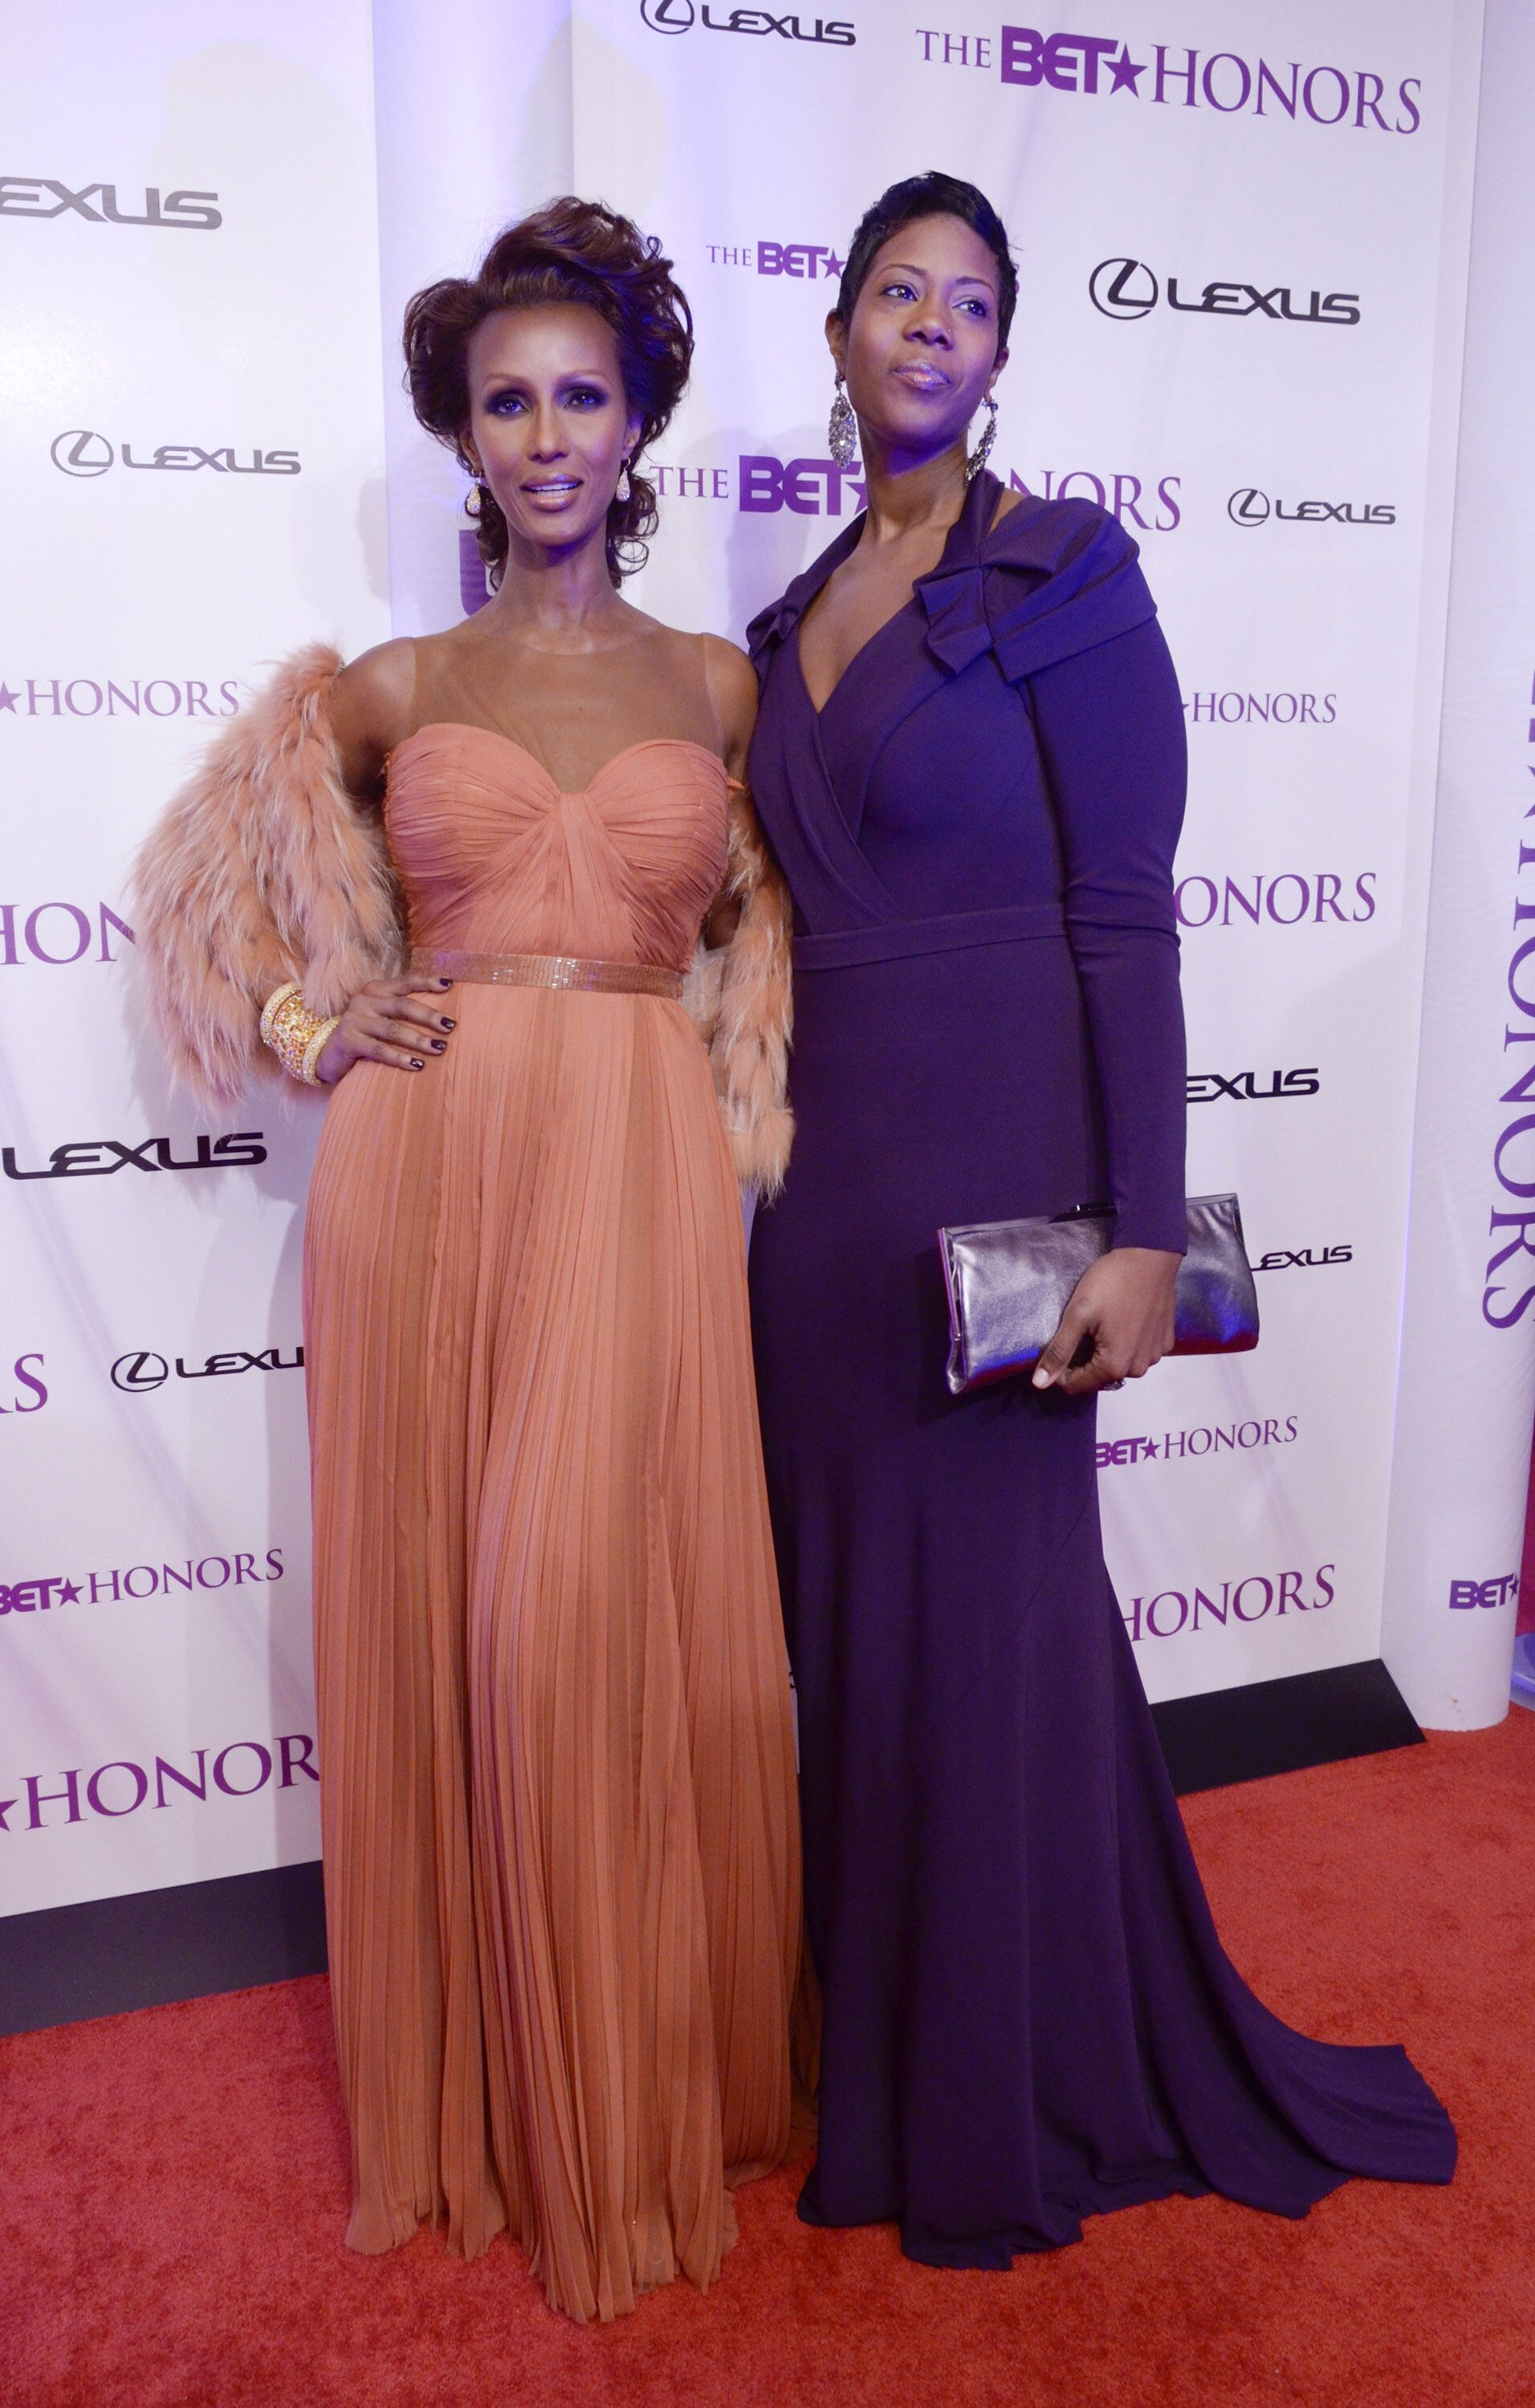 Iman and Zulekha Haywood pose for photographers on the red carpet during the 4th annual BET Honors at the Warner Theatre on January 15, 2011 in Washington, DC. | Source: Getty Images